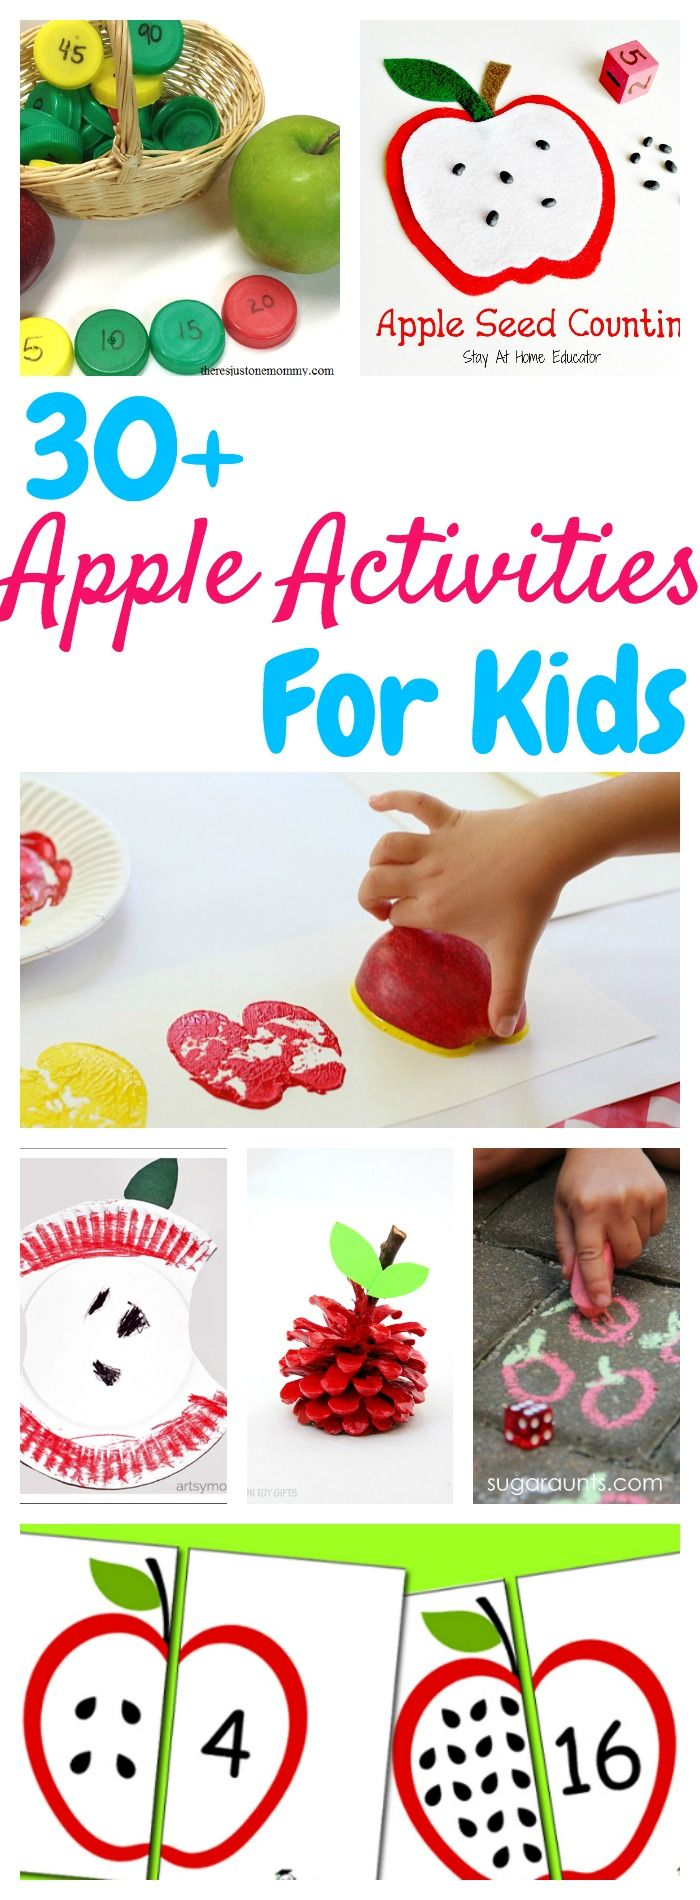 Over 30 Fun Apple Activities for Kids